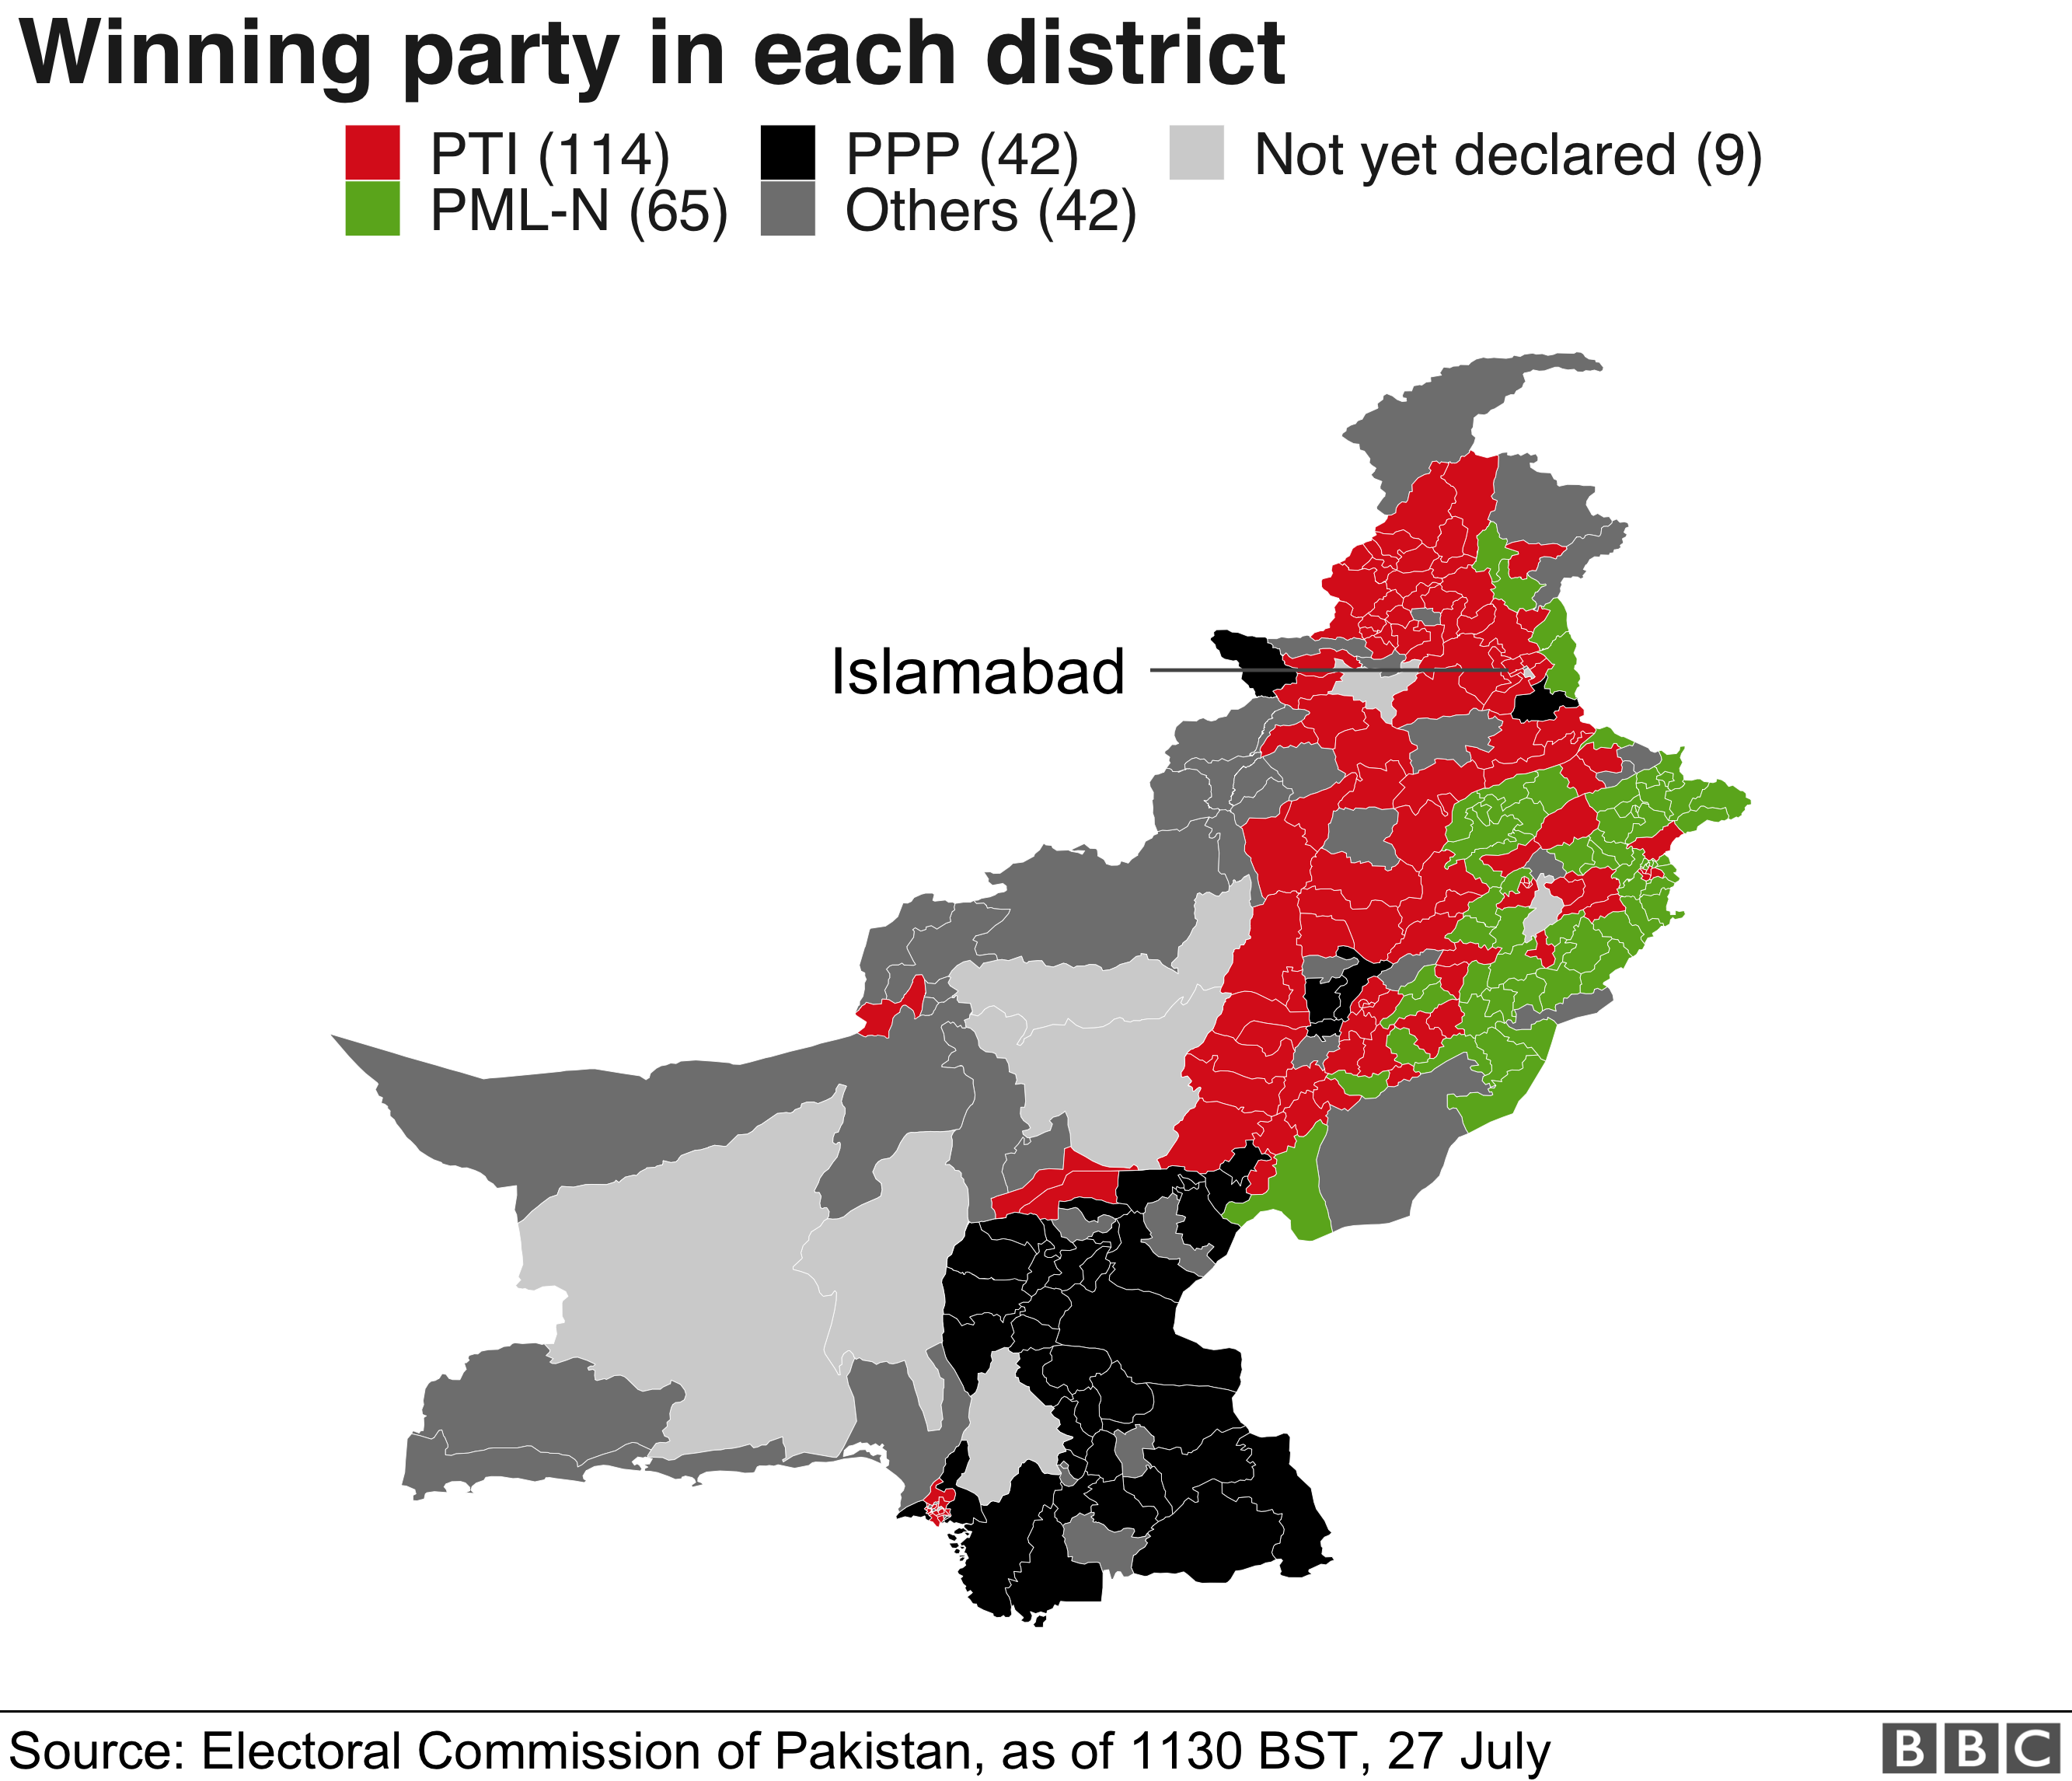 Pakistan's winning parties in each district